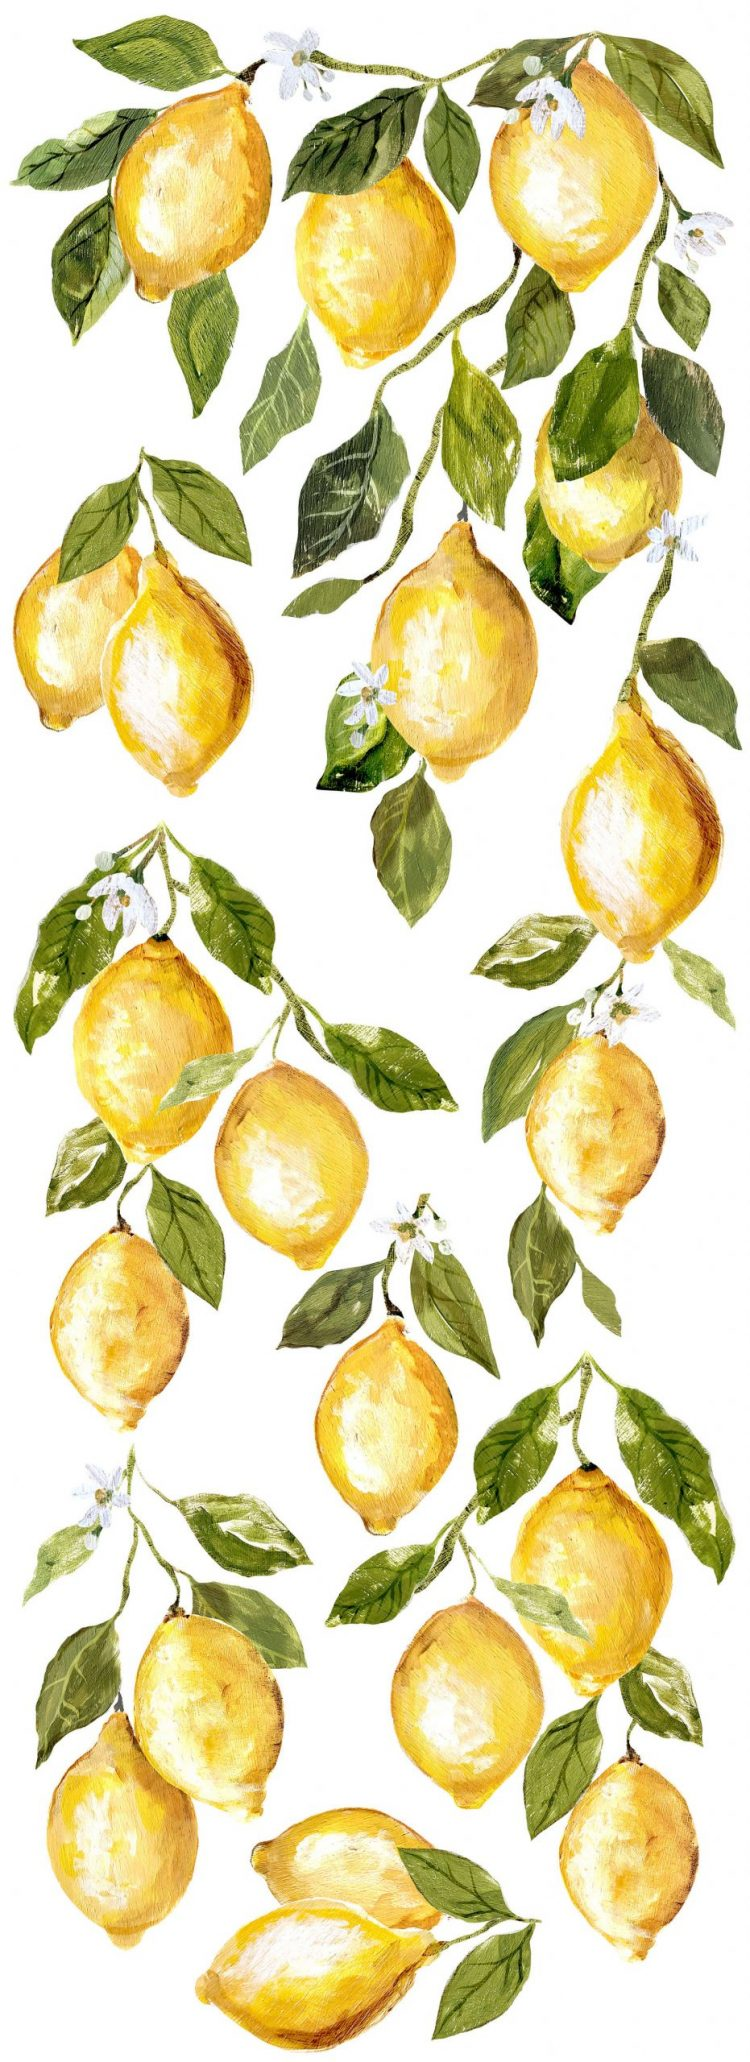 Have fun adding texture to your projects with these Iron Orchid Designs Decor Transfers - Lemon Drops   www.raggedy-bits.com   #raggedybits #IOD #LemonDrops #texture